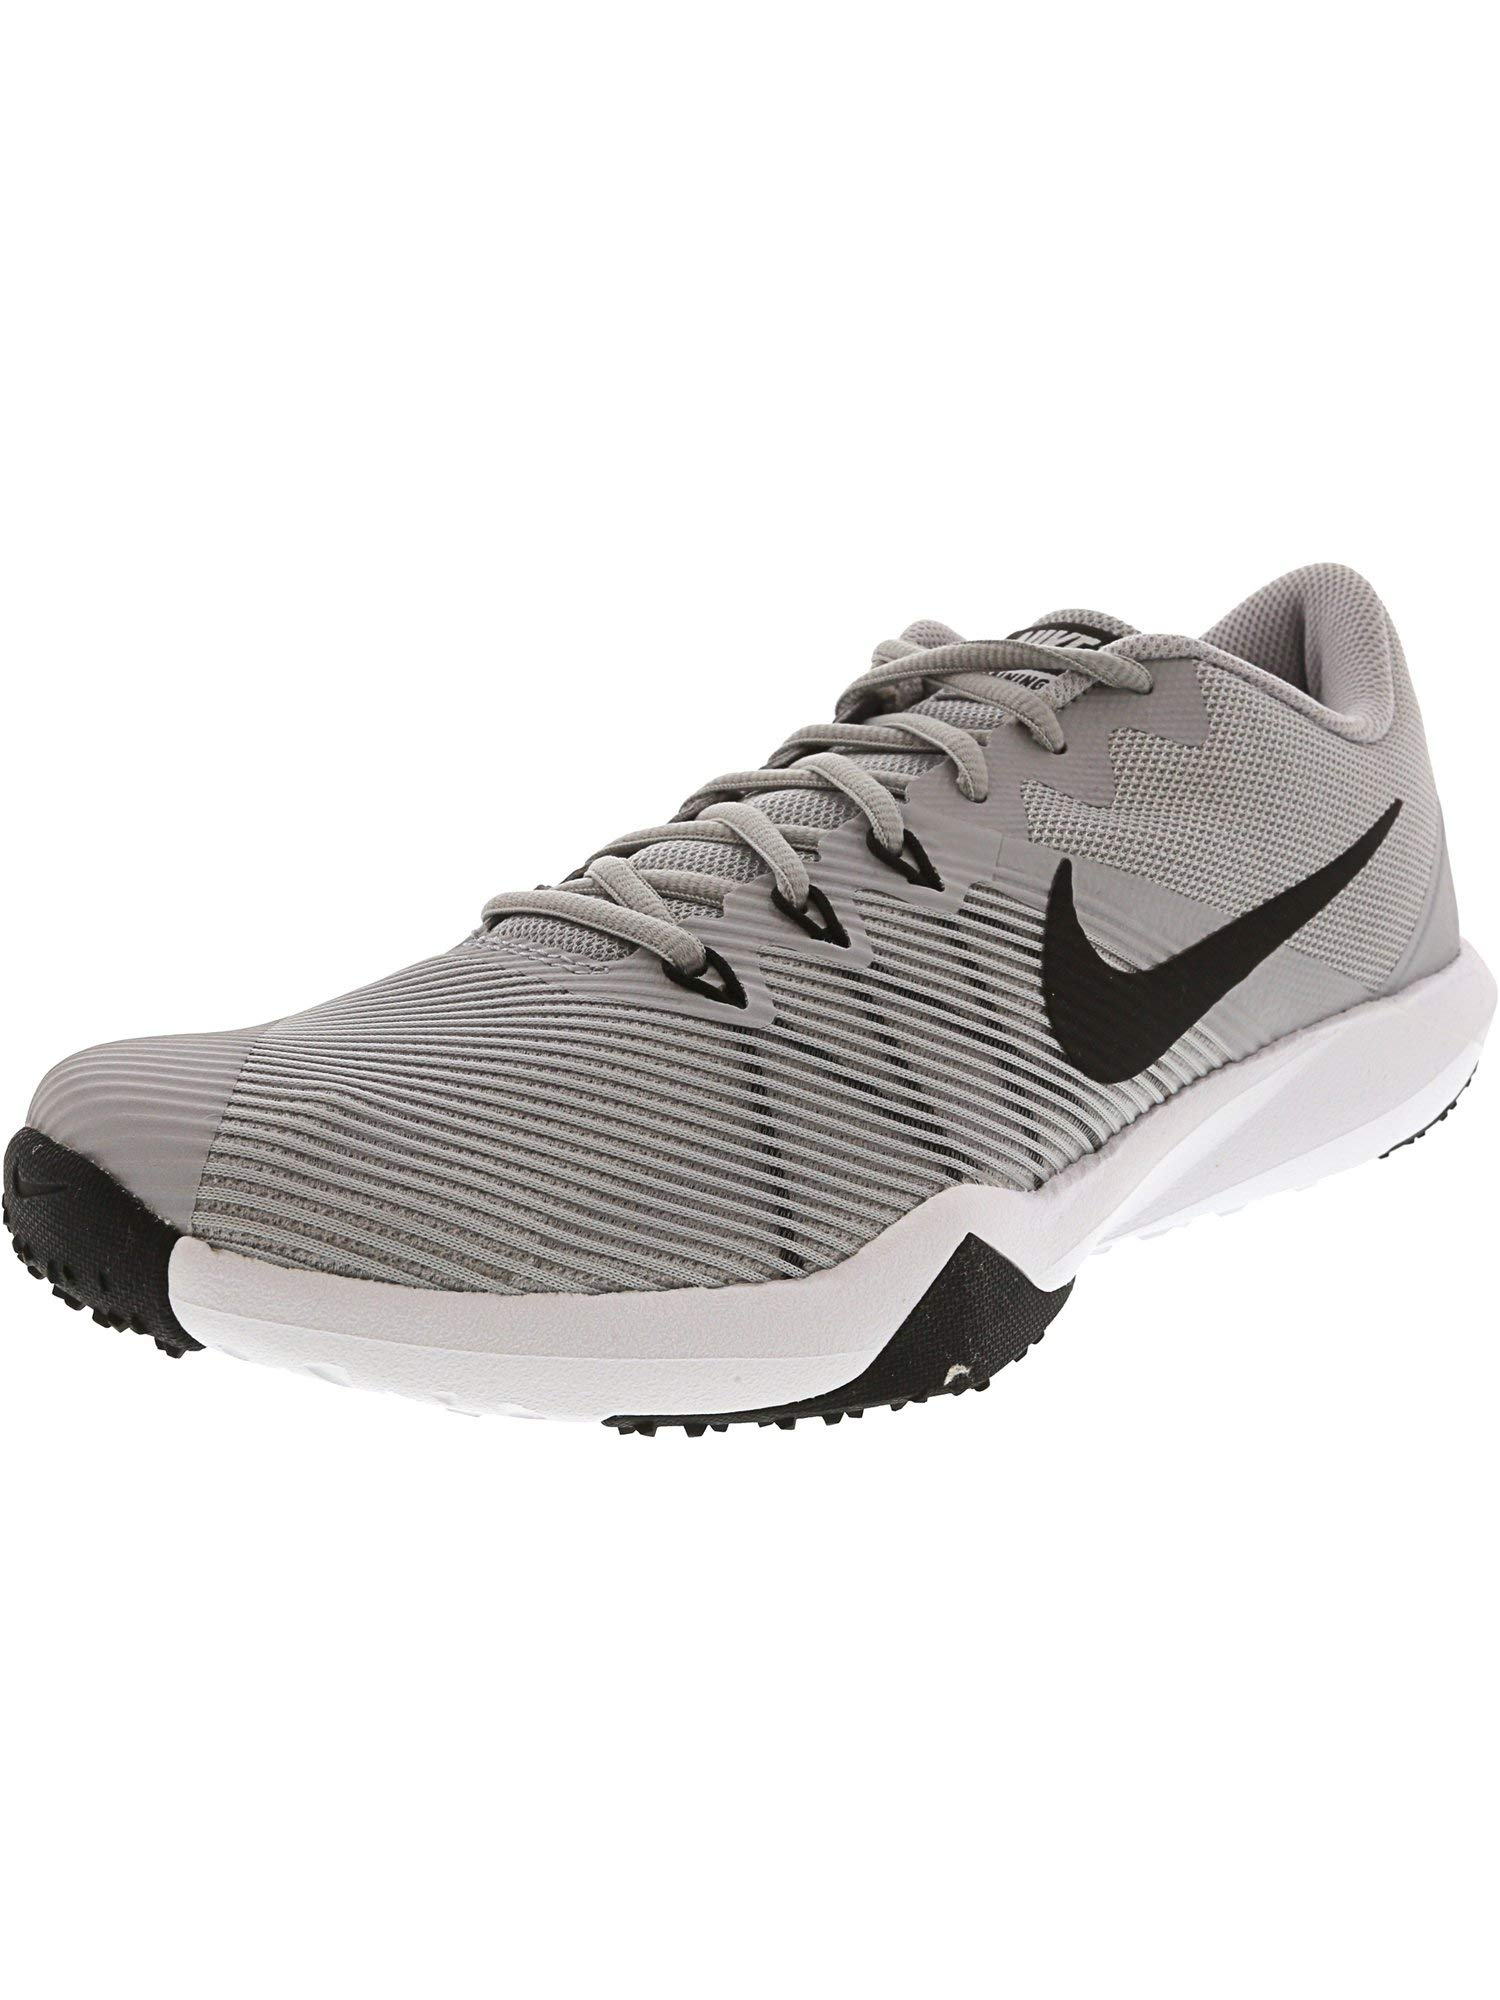 timeless design 8281a 051e2 Galleon - Nike Men s Retaliation Tr Wolf Grey Black - White Ankle-High  Fabric Training Shoes 8M